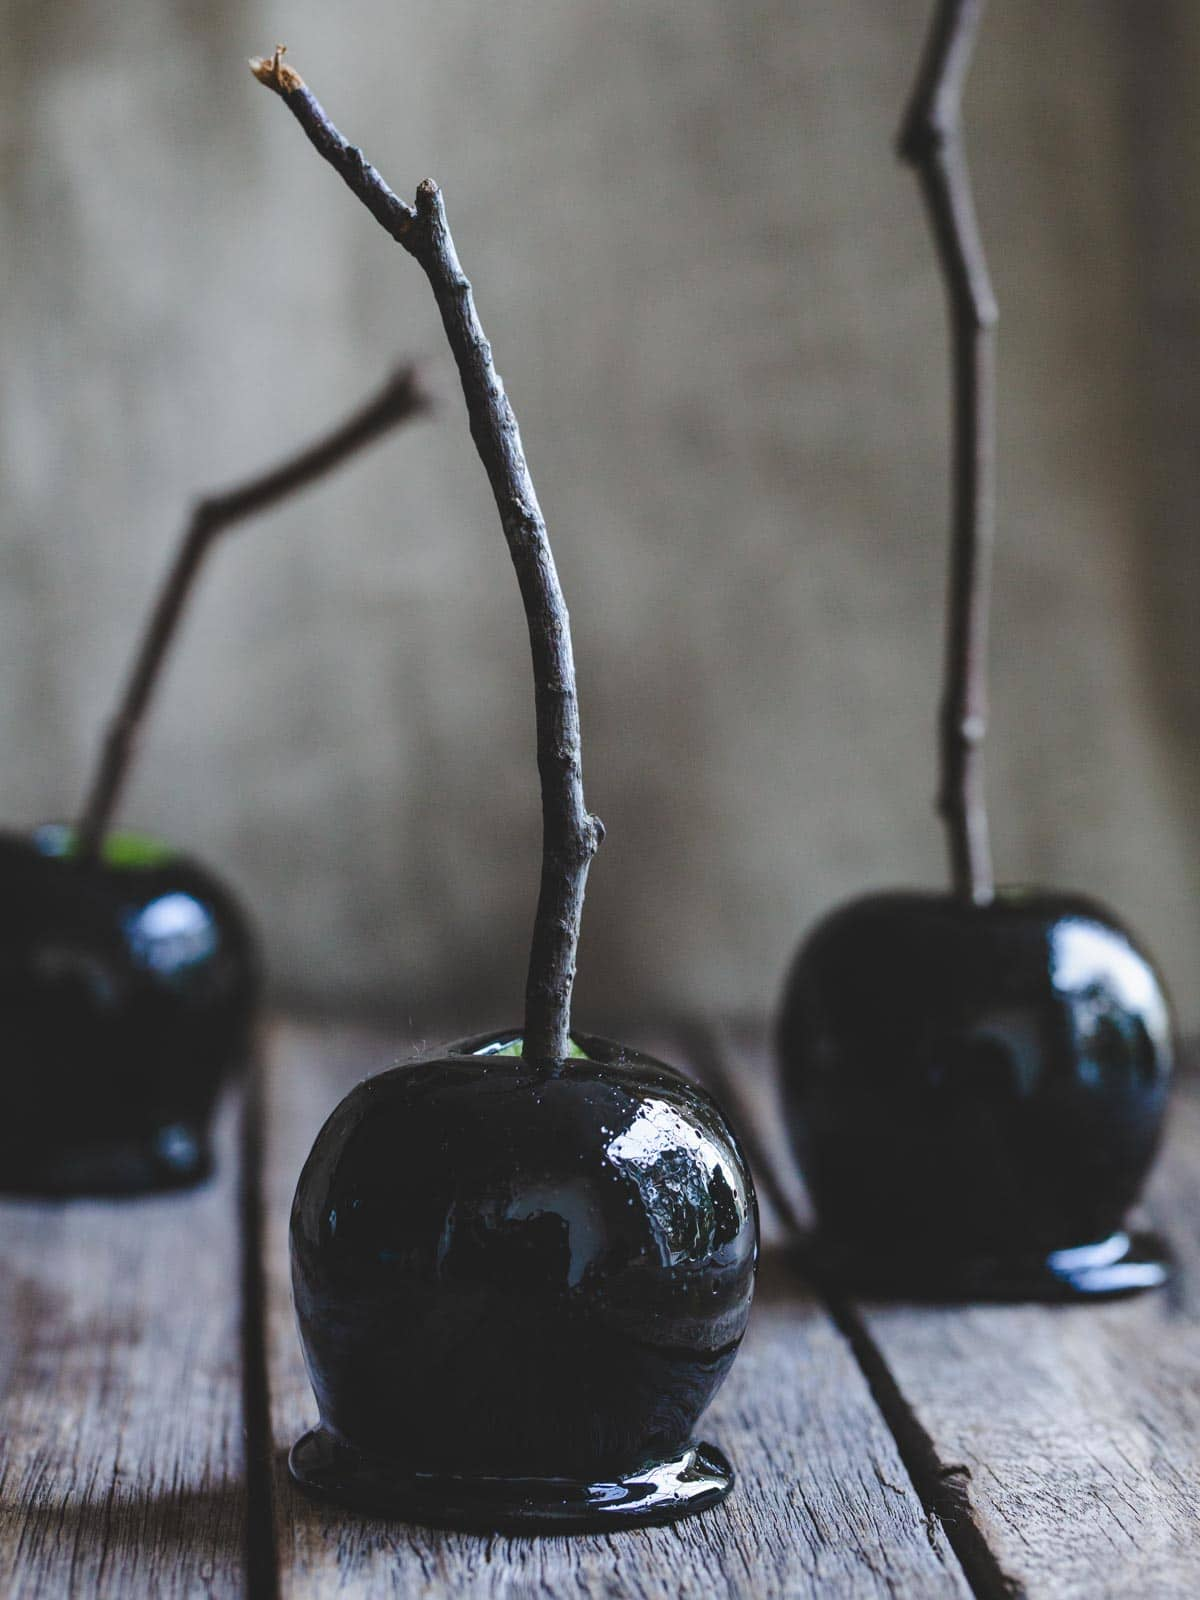 Black candy apples on a wooden table.